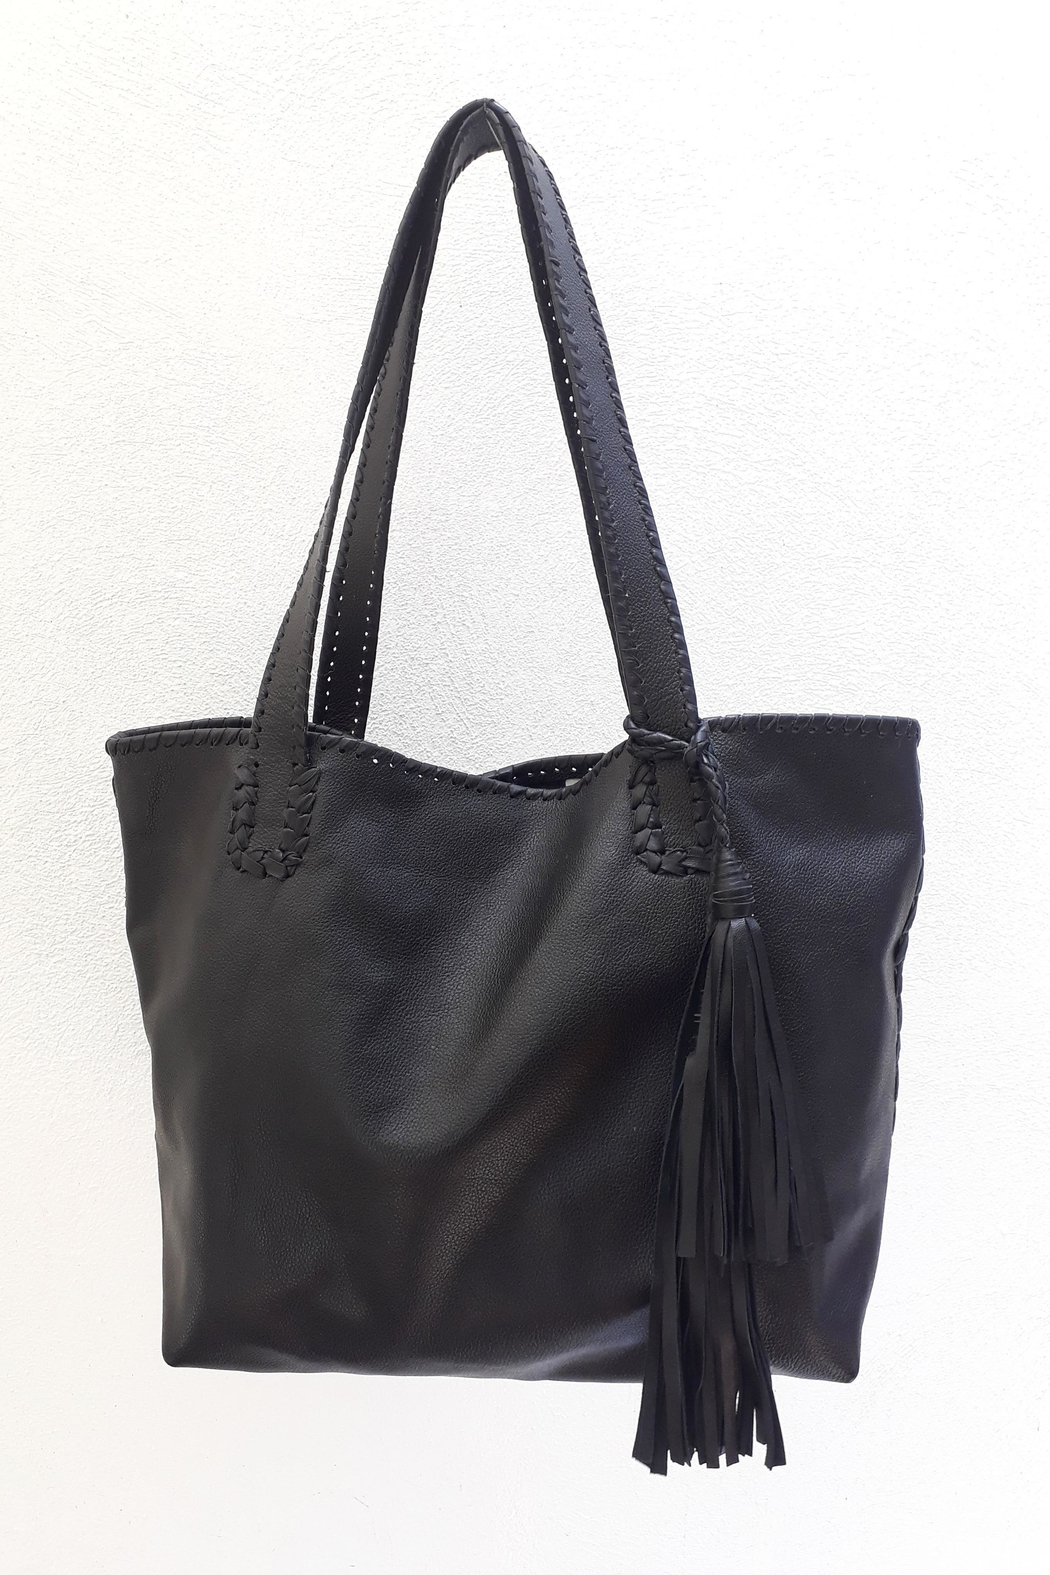 Areias Leather Black Tote Bag - Main Image